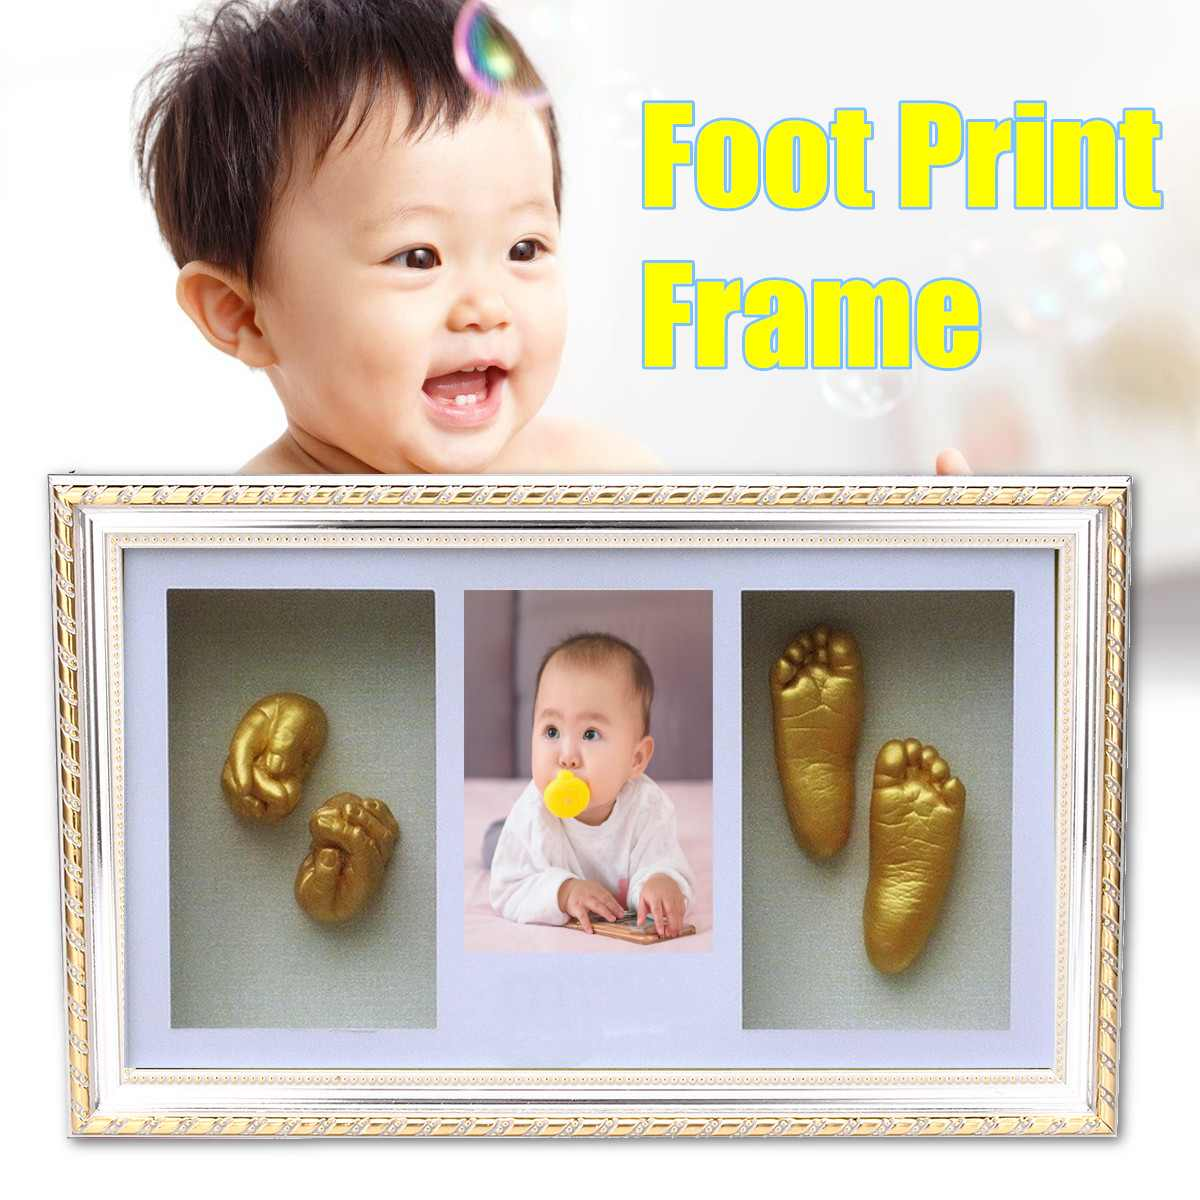 3D Hand Foot Casting Newborn Baby Footprint Photo Frame Suit Safe Clean Non-Toxic Clean Hand And Foot Ink Pad For Baby Gift3D Hand Foot Casting Newborn Baby Footprint Photo Frame Suit Safe Clean Non-Toxic Clean Hand And Foot Ink Pad For Baby Gift